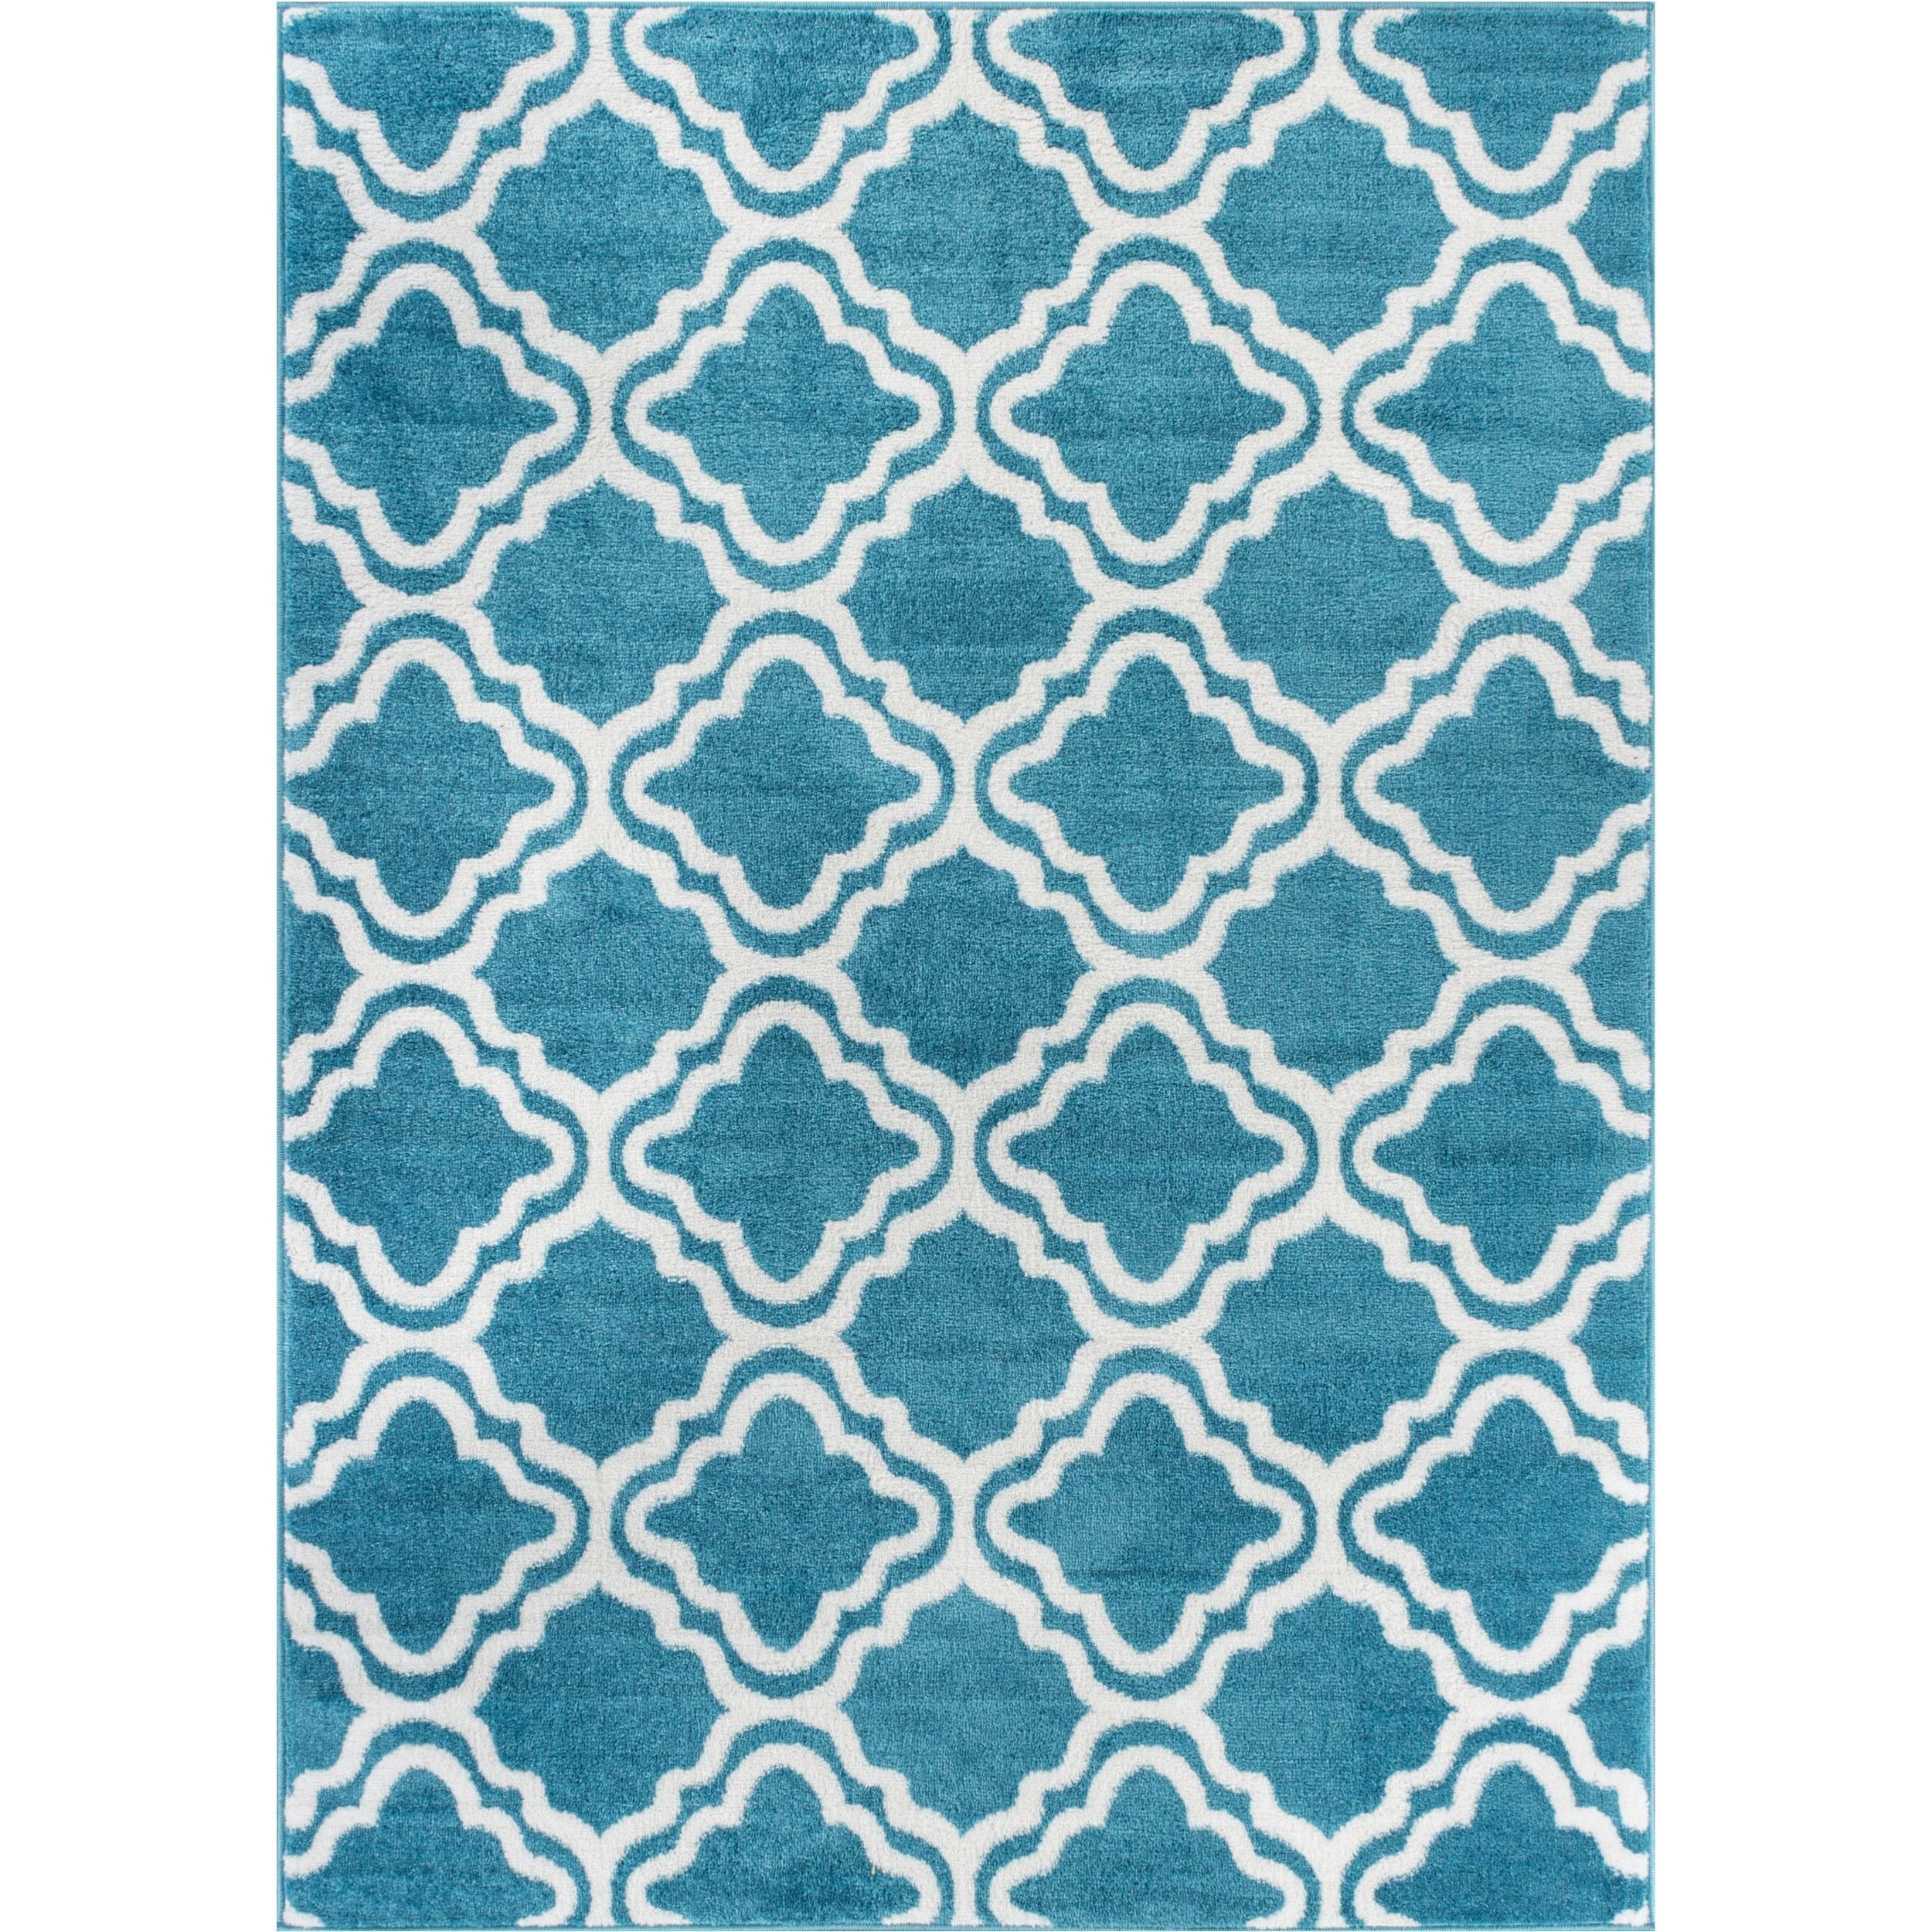 area blue today james oliver product shipping knight nuloom abstract rug free overstock home modern garden x painting contemporary